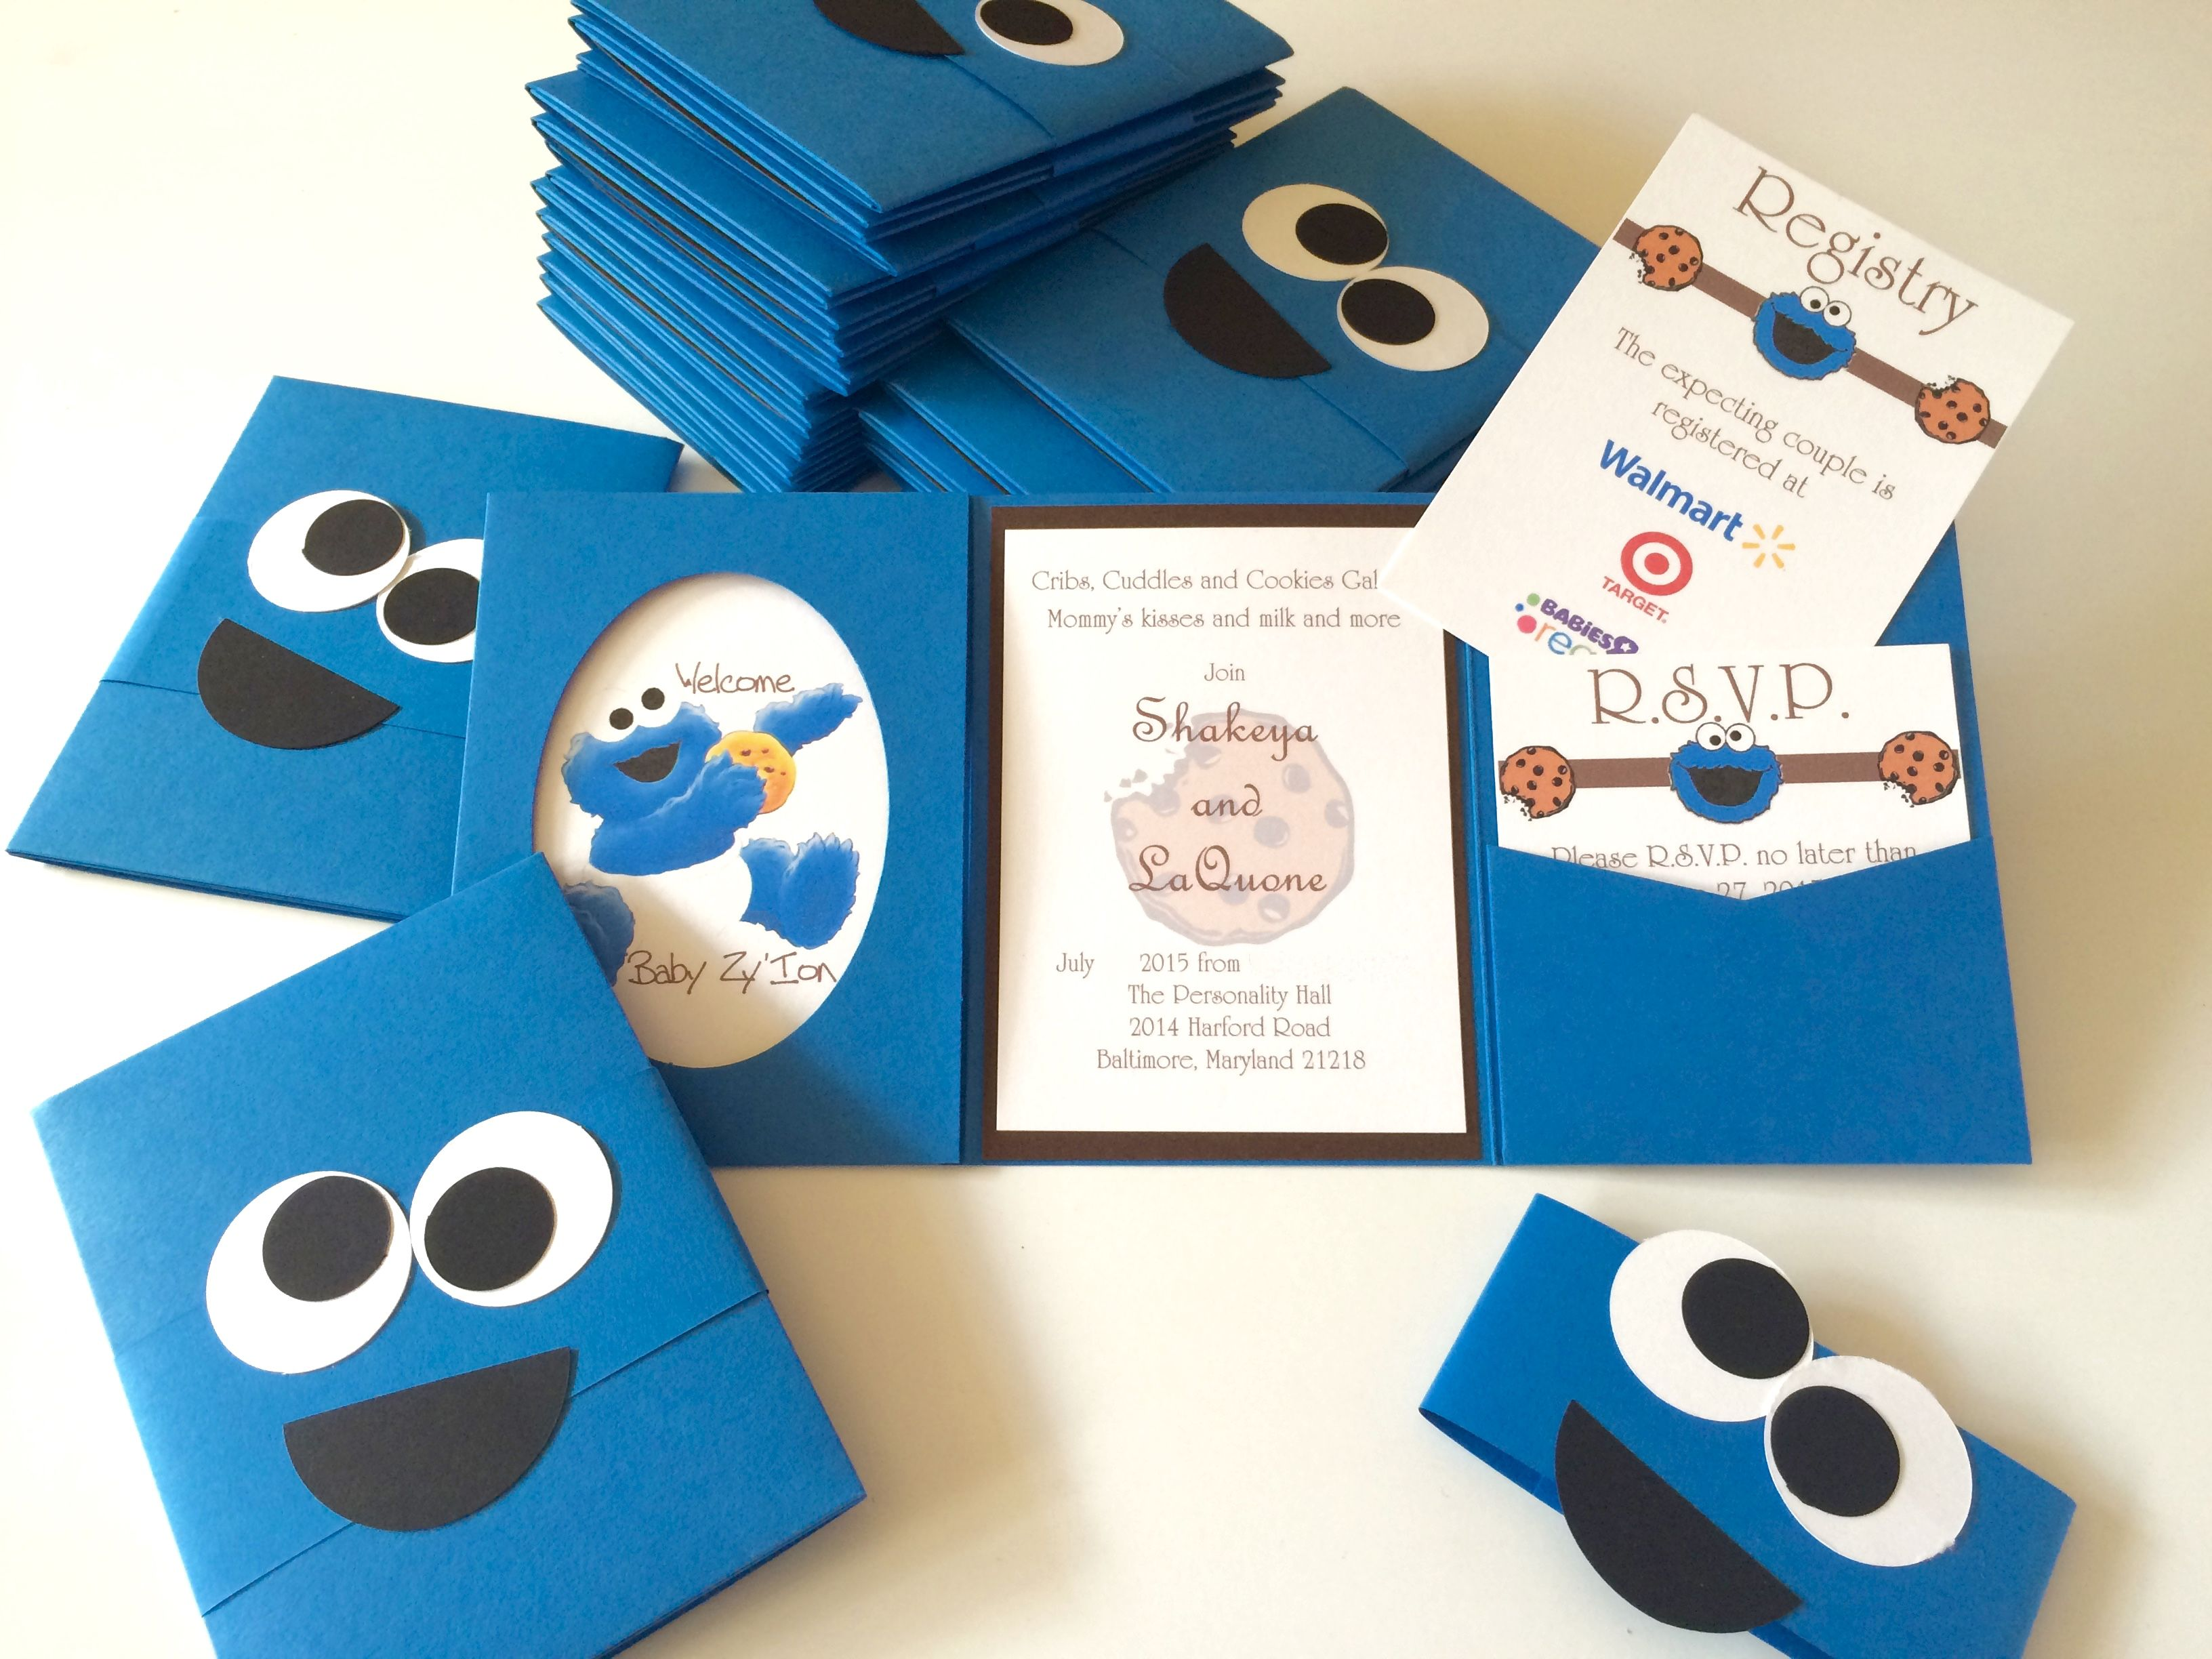 cookie monster baby shower invitations stationery designs by ddbd